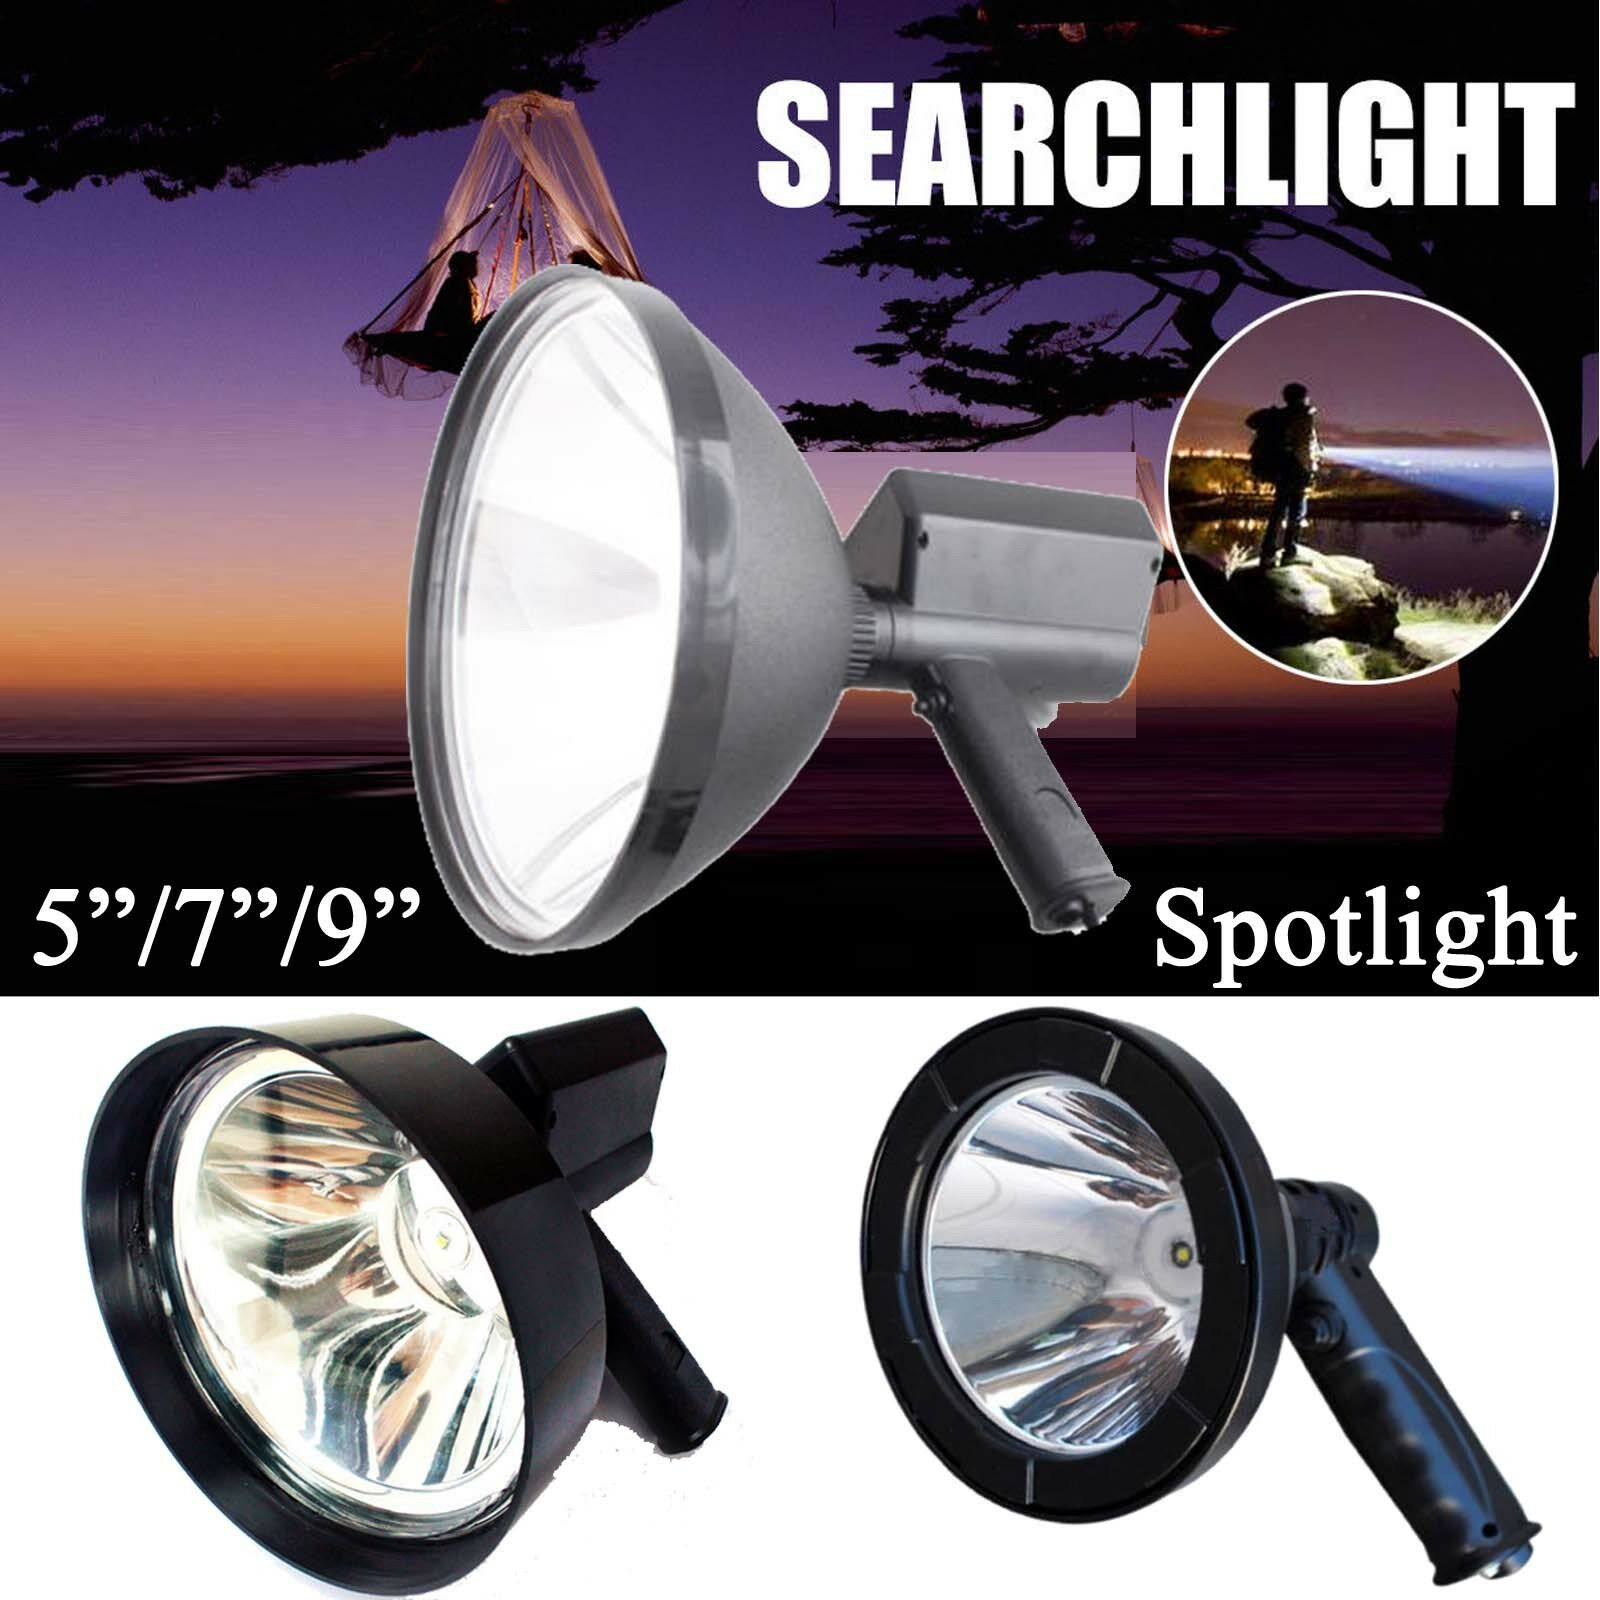 5 7  LED CREE Rechargeable Spotlight  Hunting HID Handheld Torch Spot Search Lamp  the most fashionable